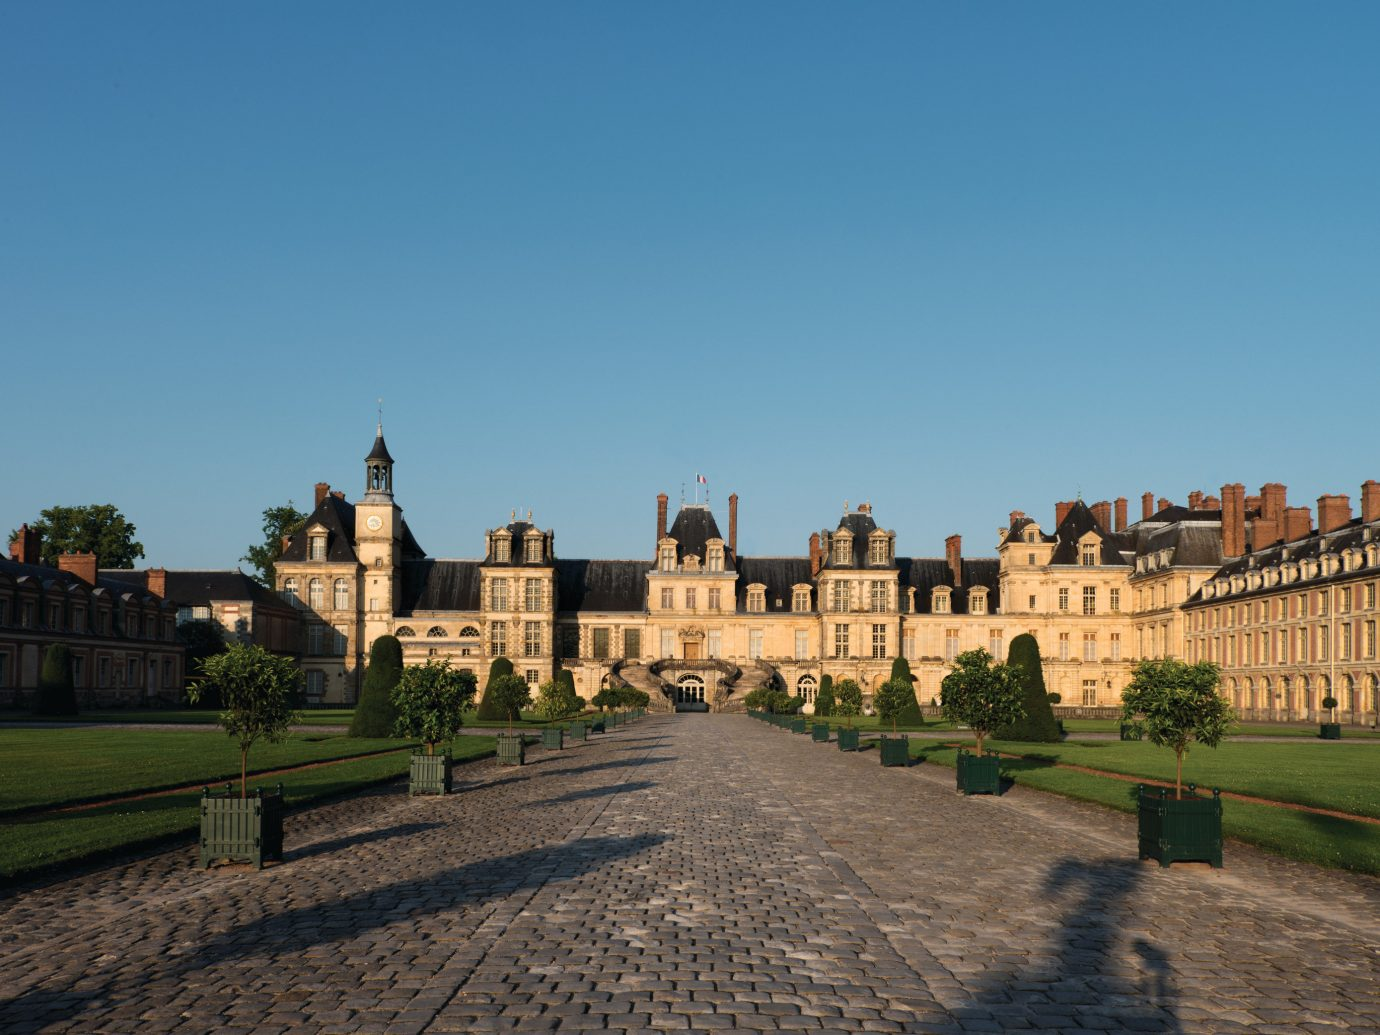 Trip Ideas sky outdoor grass building landmark Town City human settlement château estate palace cityscape town square castle panorama monastery day